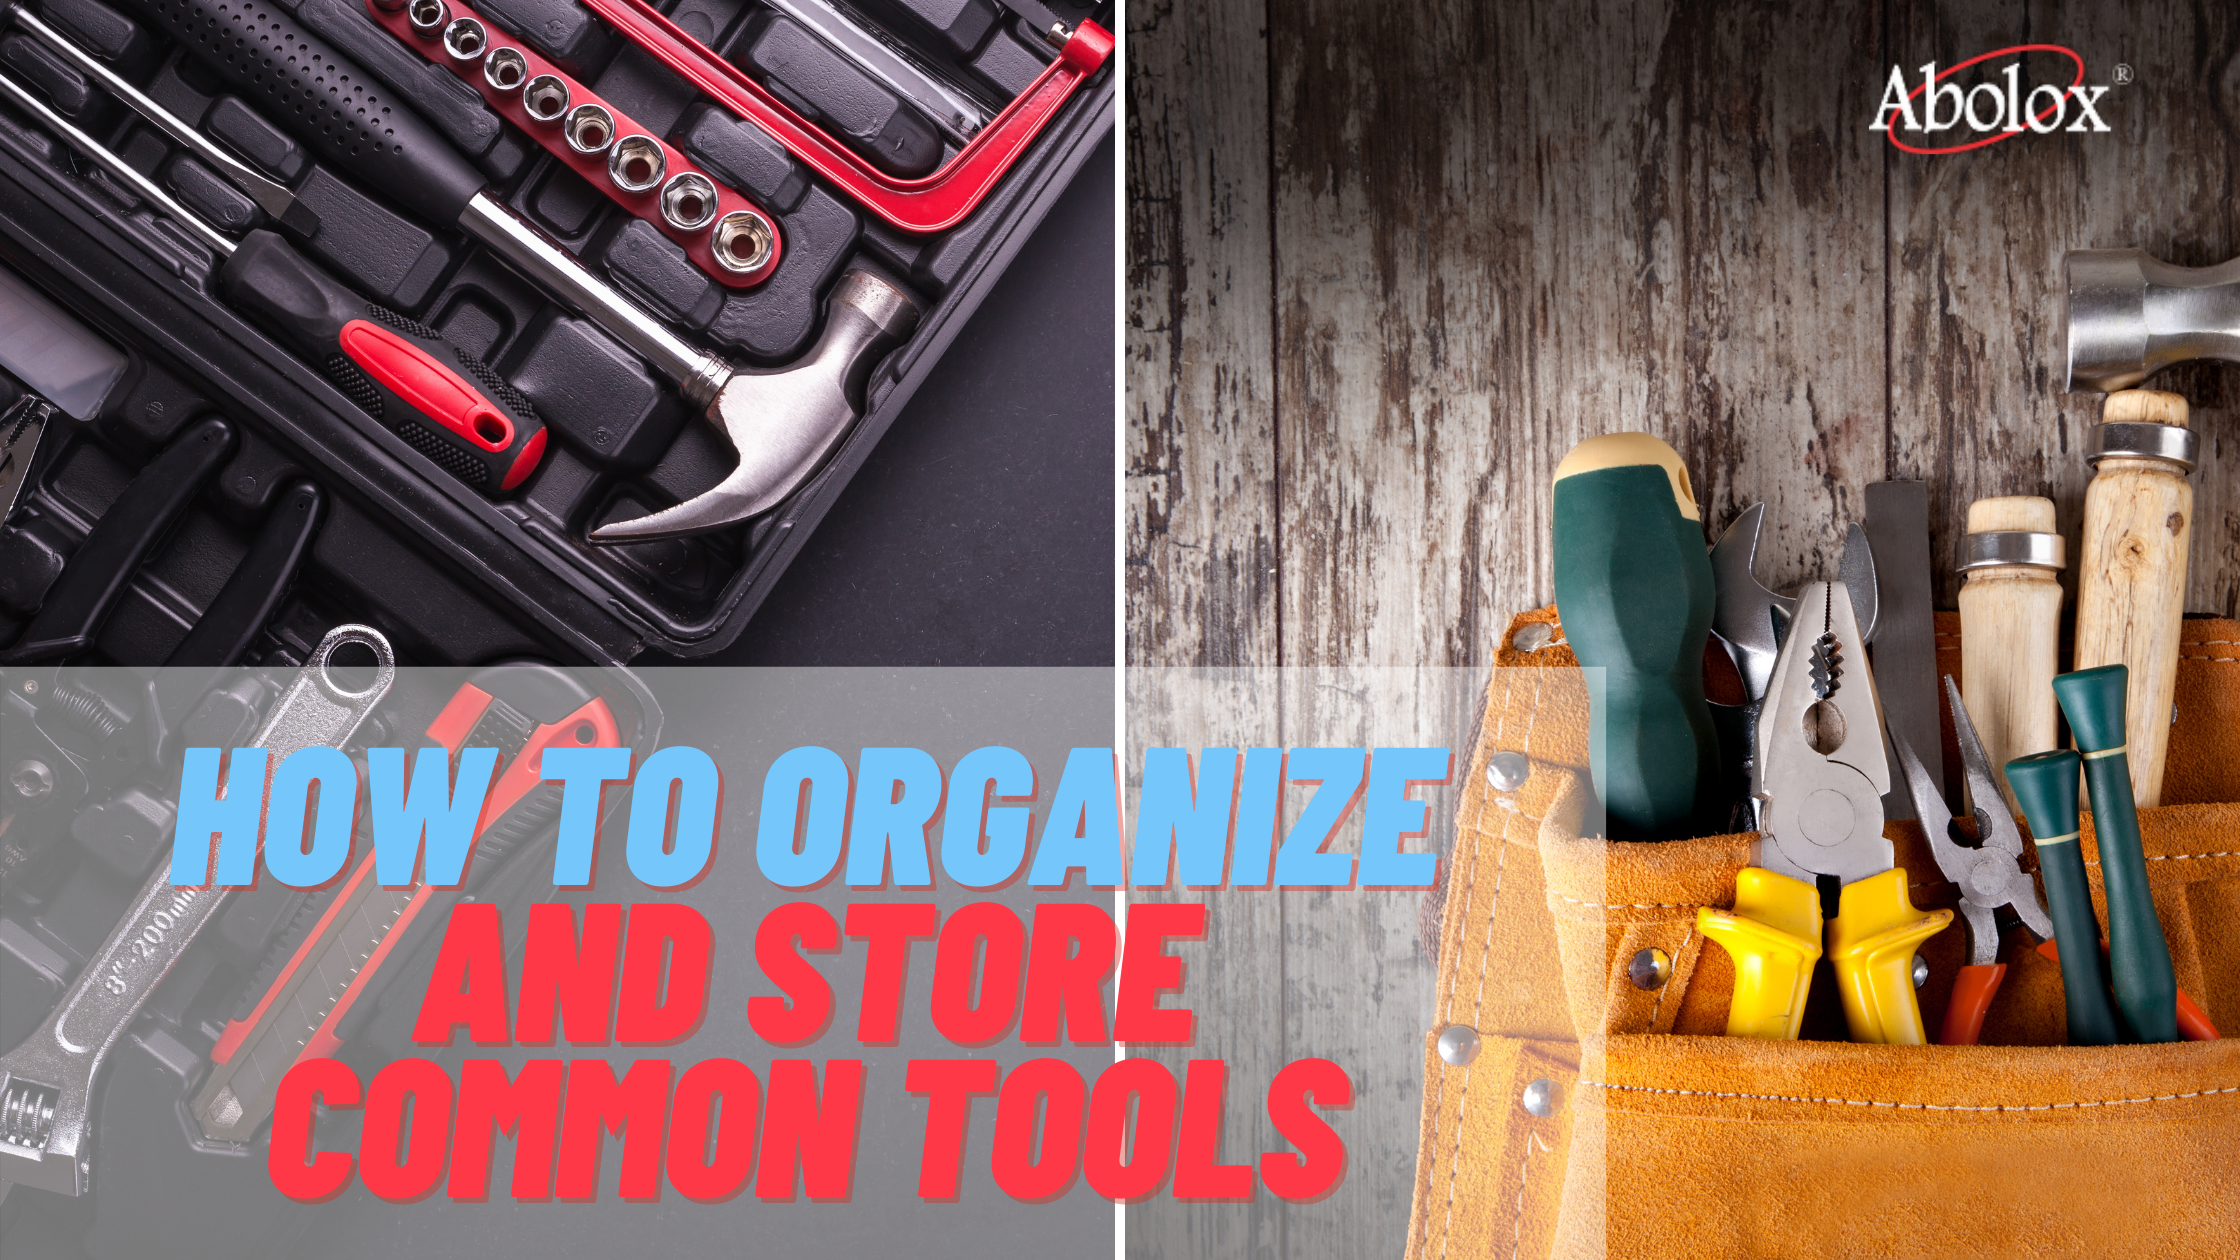 How to Organize and Store Common Tools